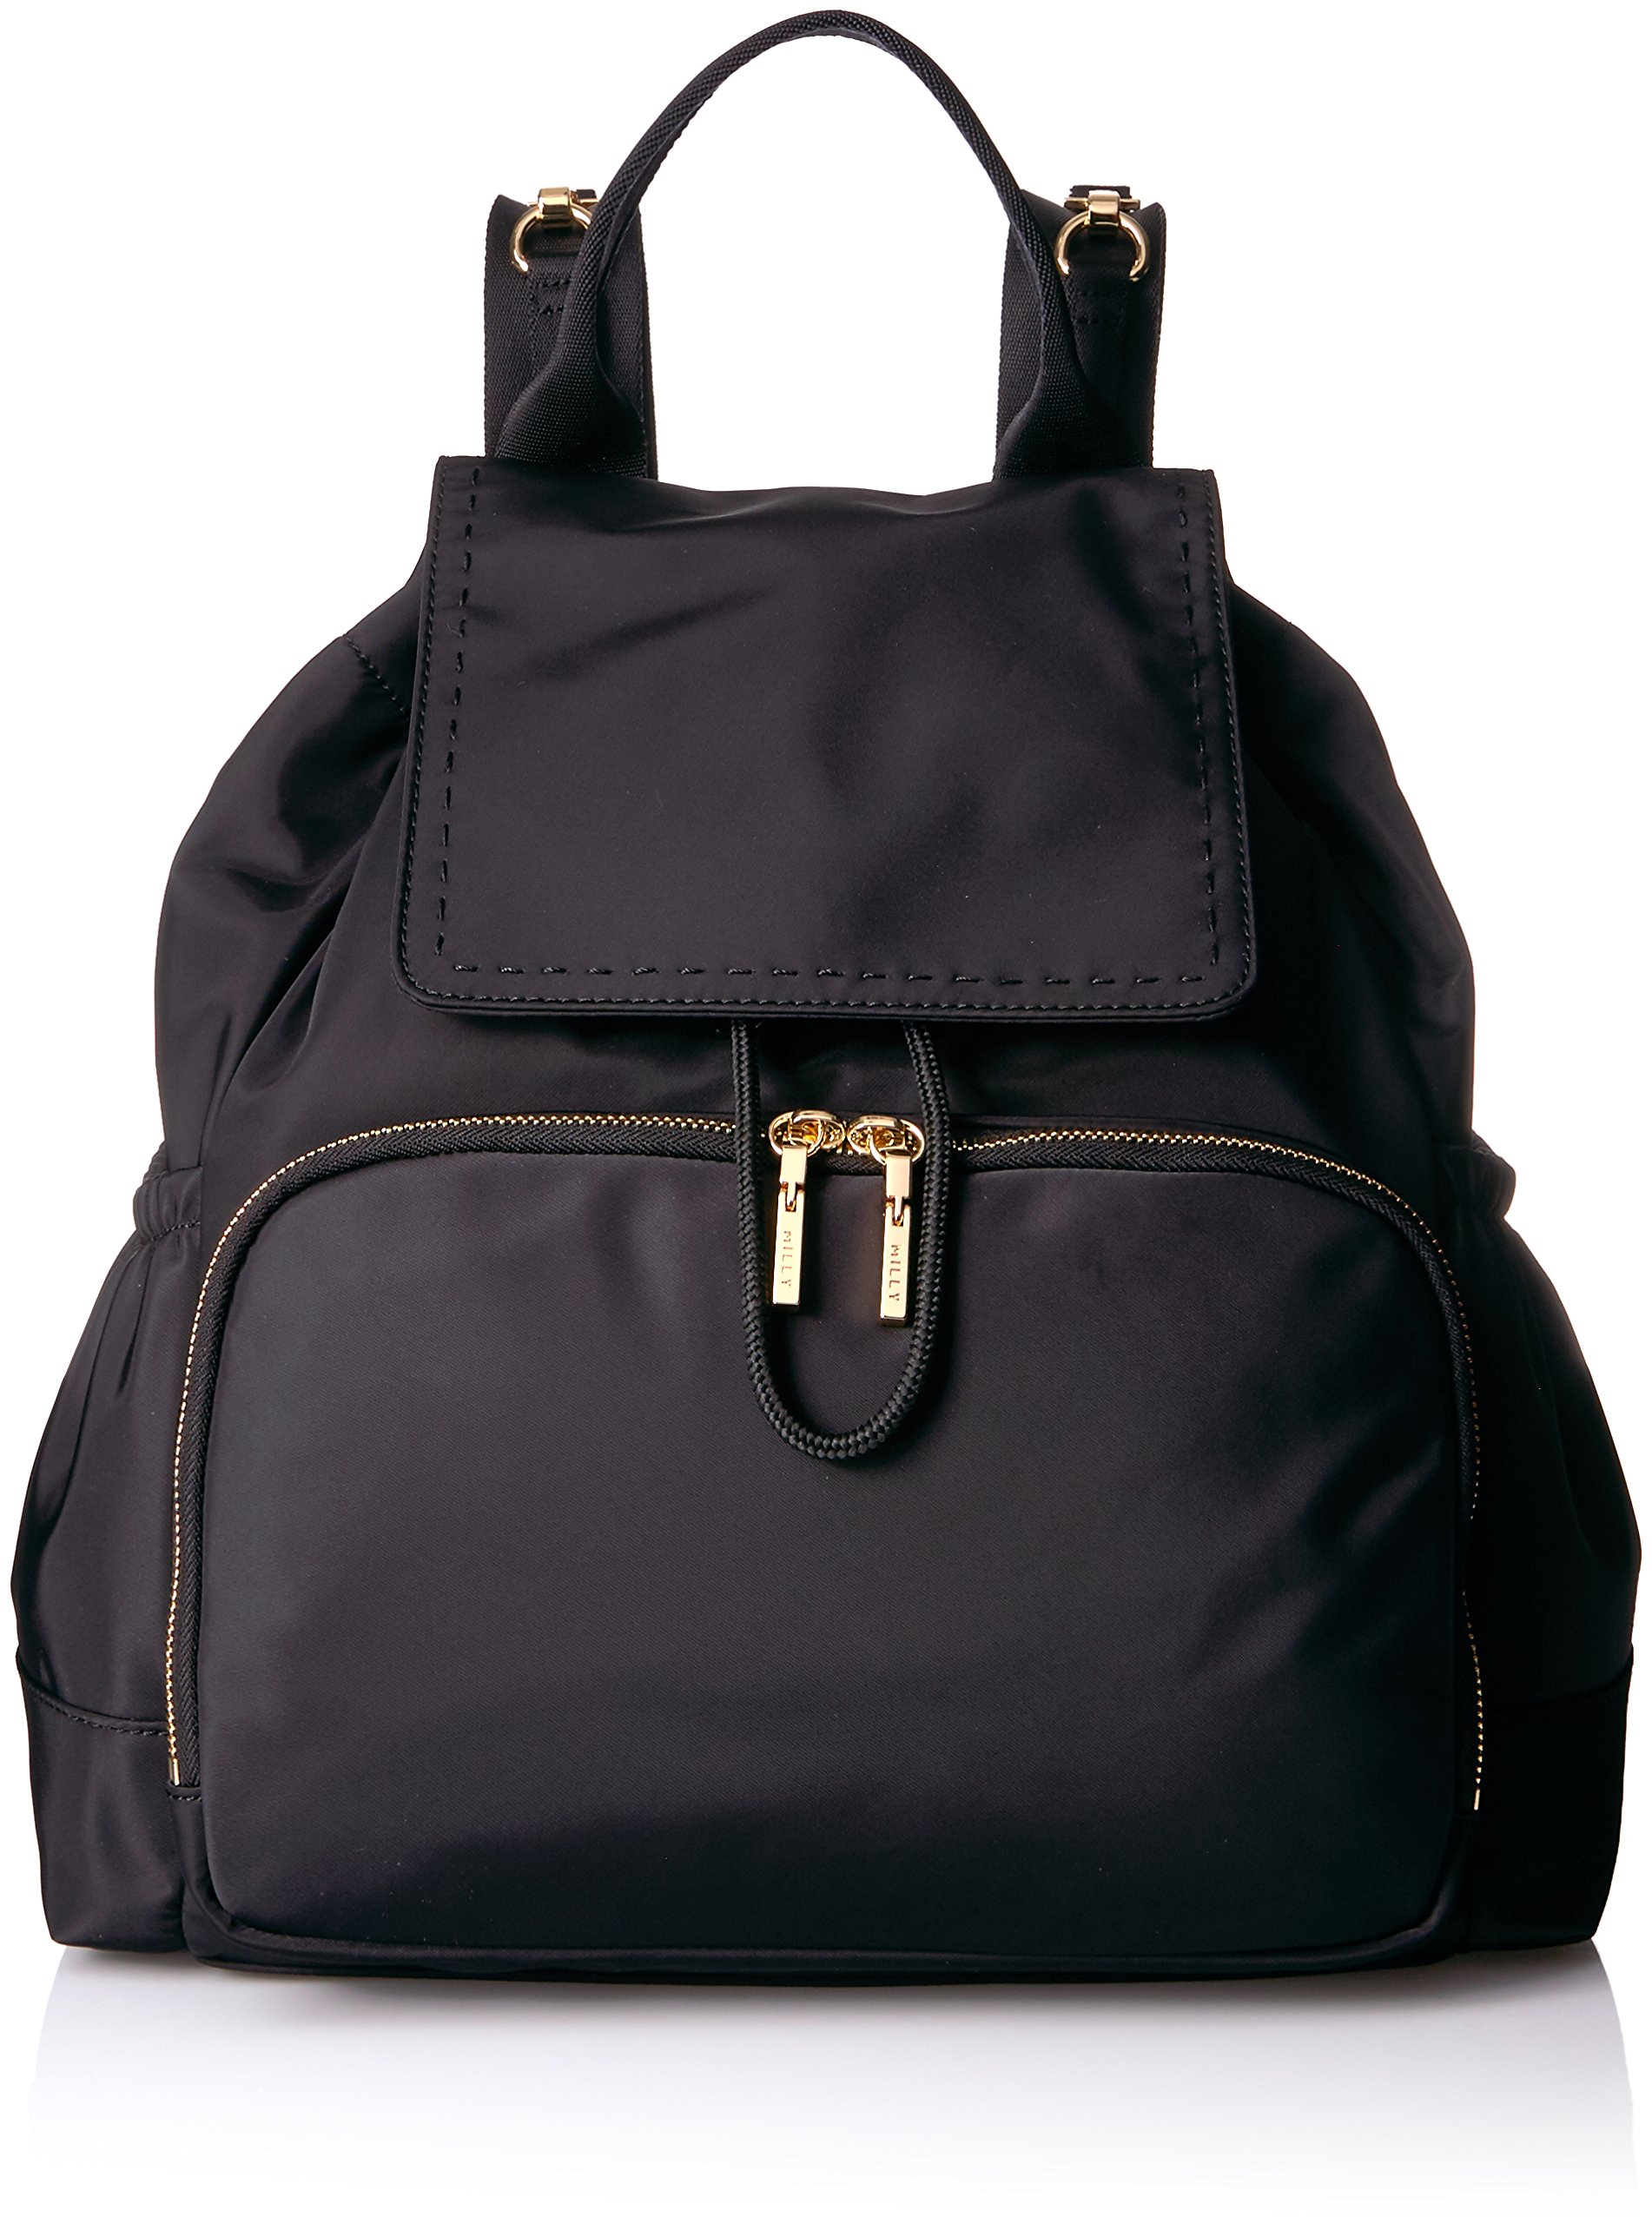 MILLY Women's Backpack Diaper Bag, black by MILLY